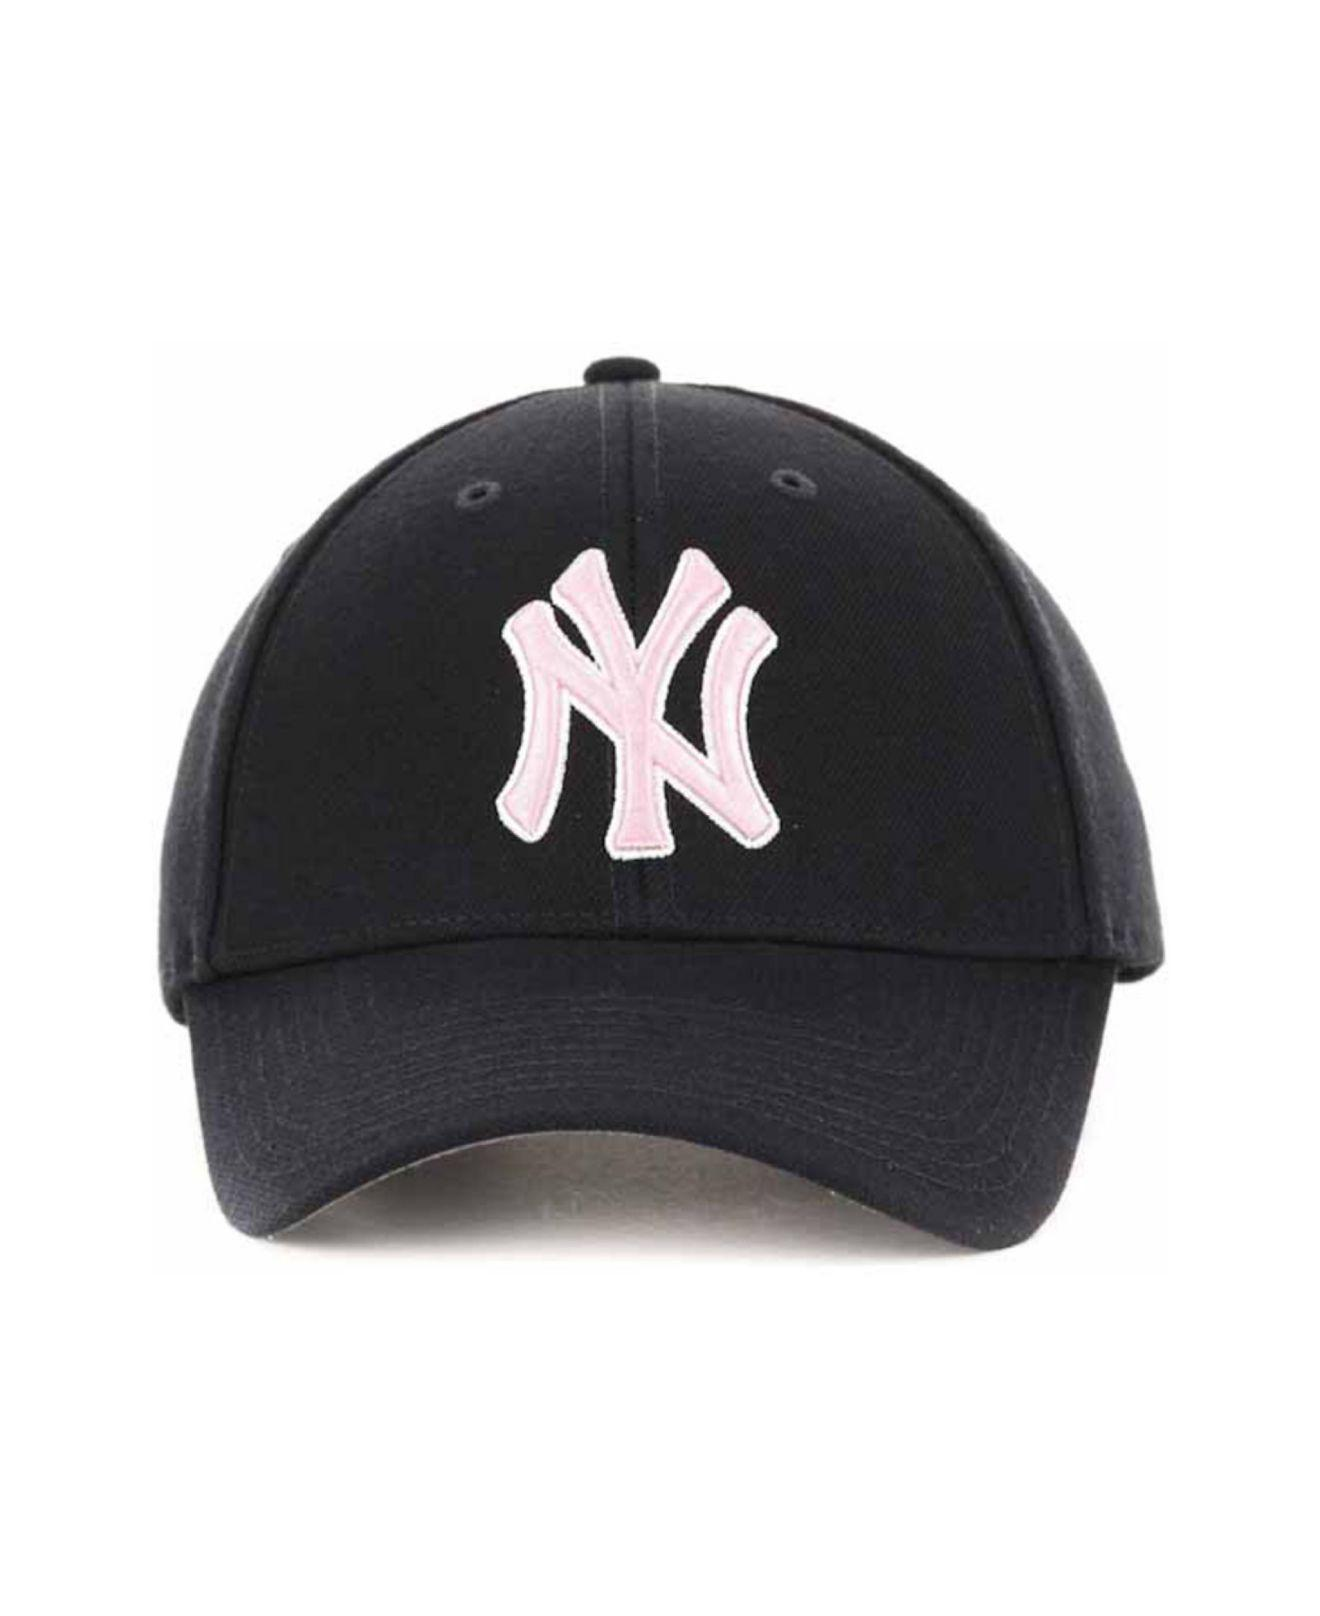 1a5ed8c2584cb ... sale new york yankees mvp curved cap for men lyst. view fullscreen  ab17b c0ef3 discount code for lyst 47 brand ...